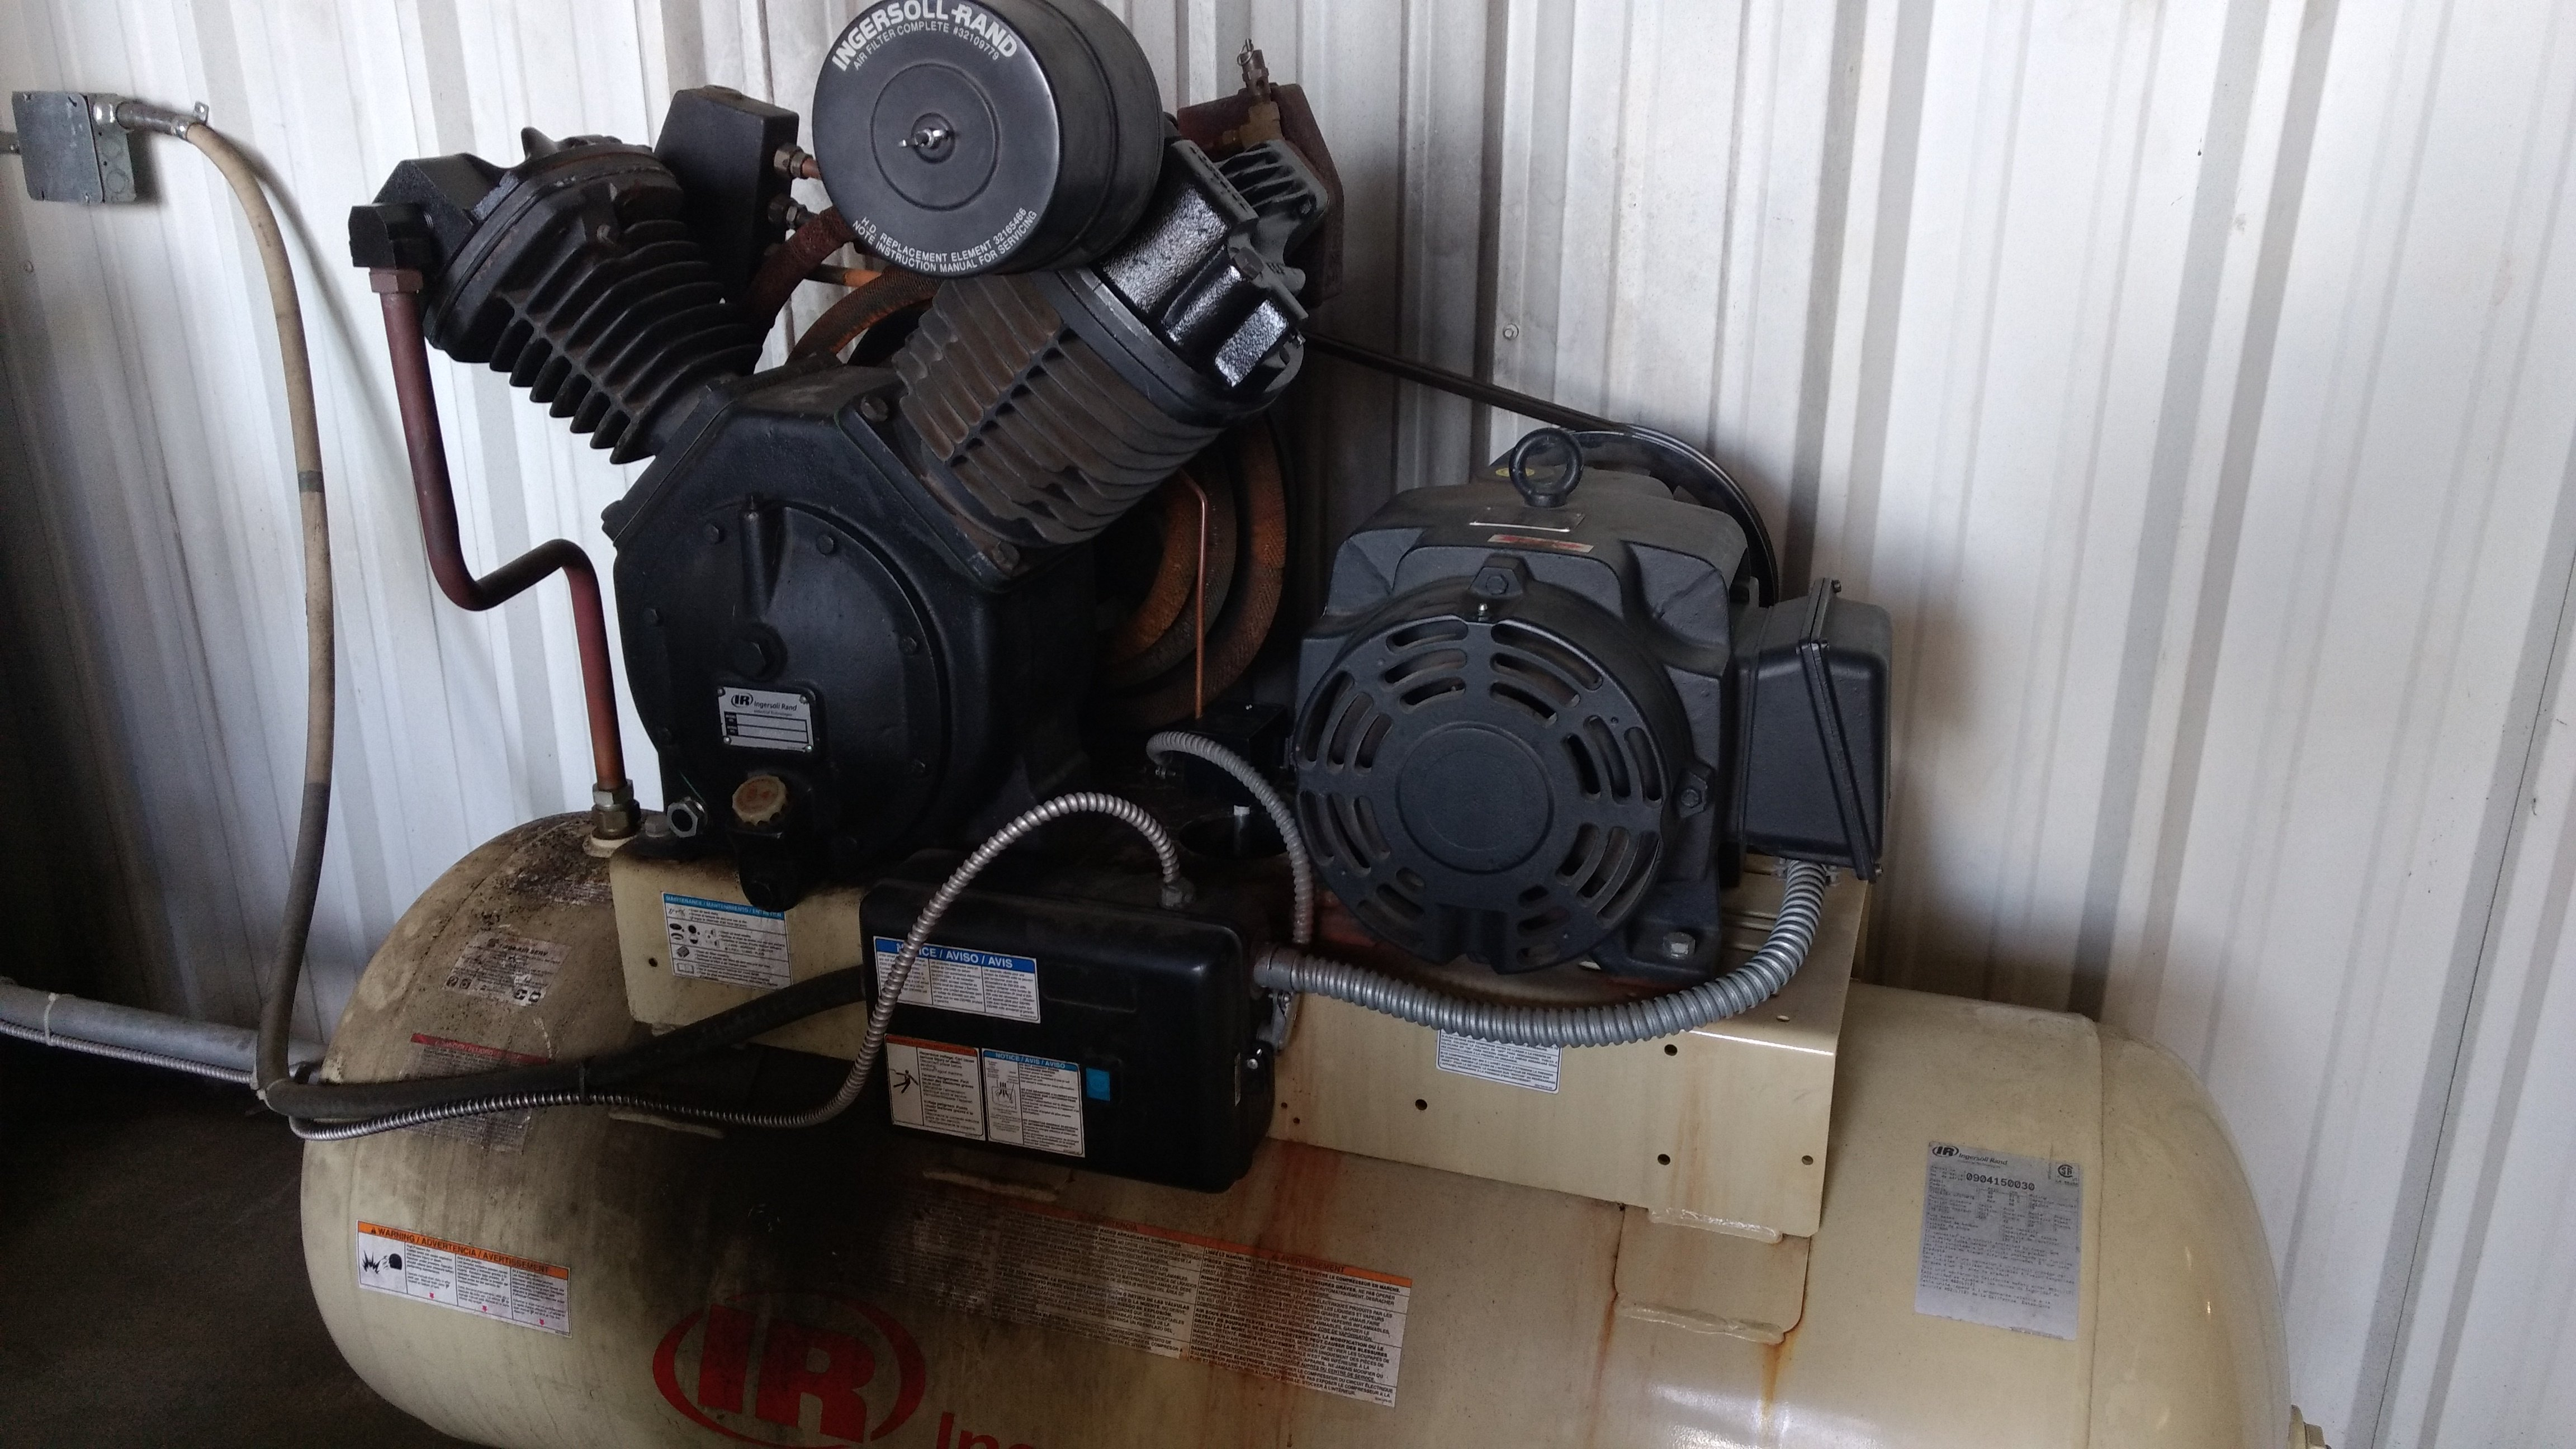 another view of the compressor